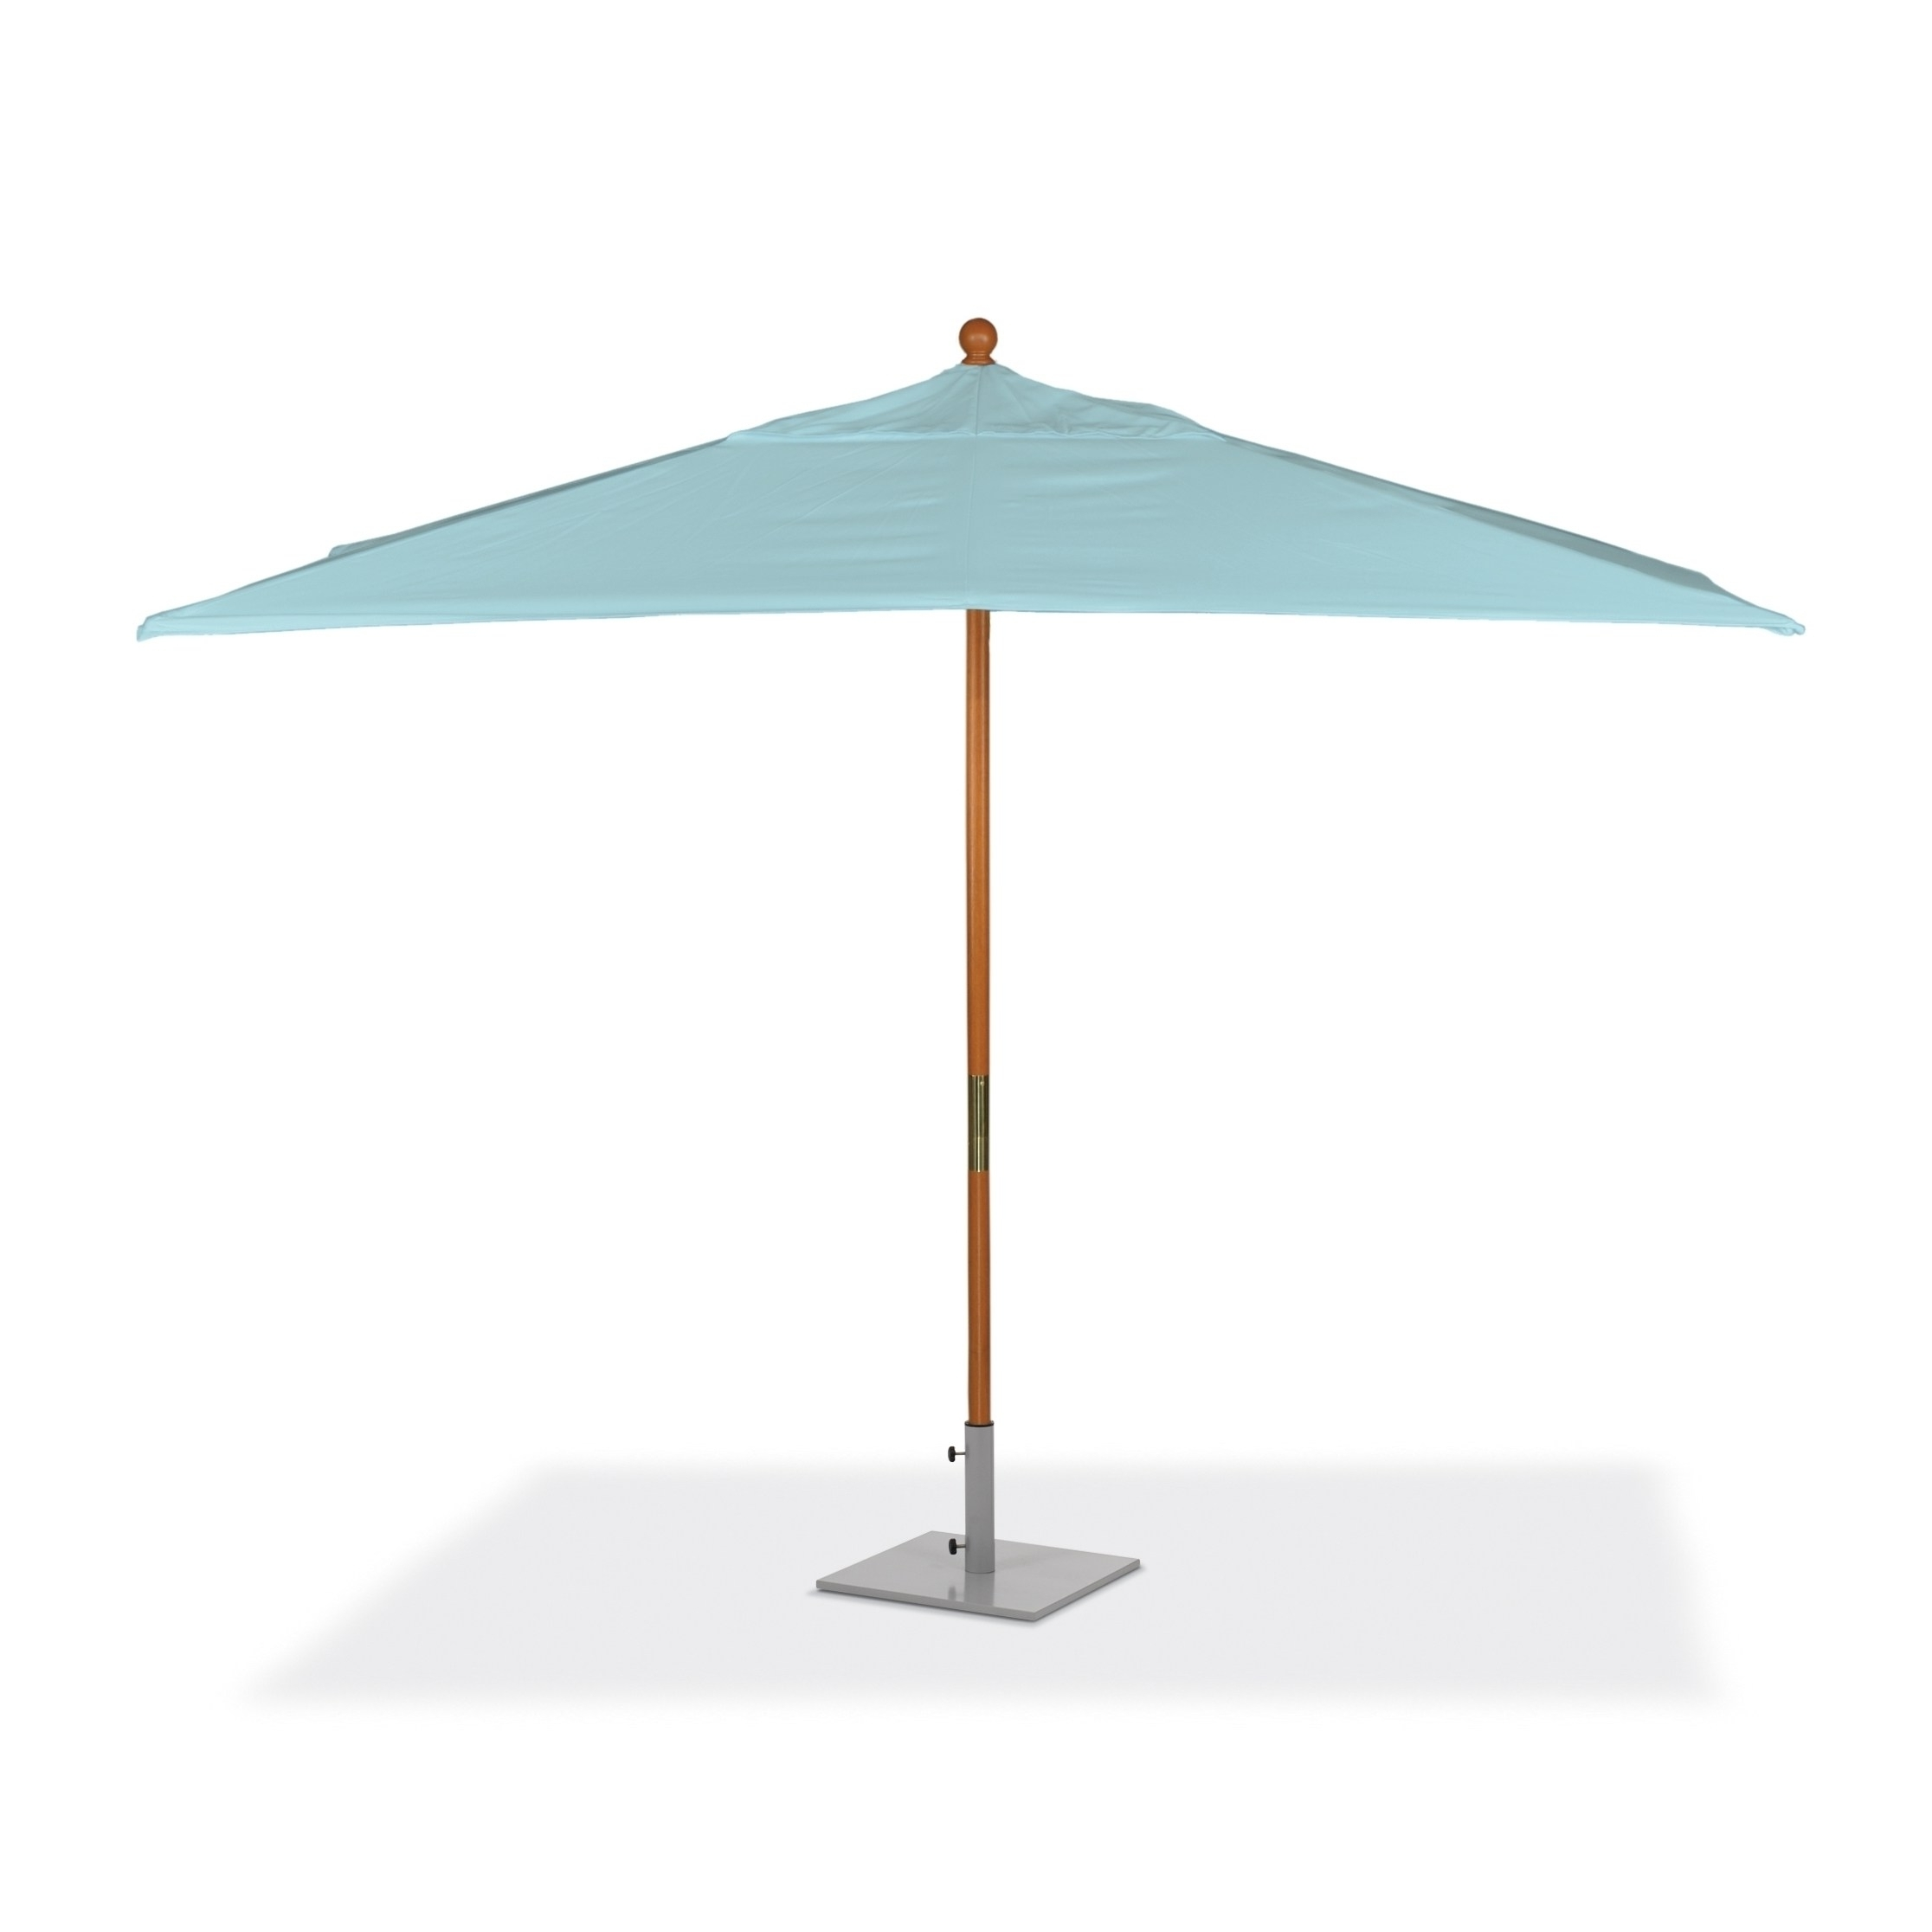 Rectangular Sunbrella Patio Umbrellas Throughout Well Known Shop Oxford Garden 10 Feet Rectangular Mineral Blue Sunbrella Fabric (View 12 of 20)